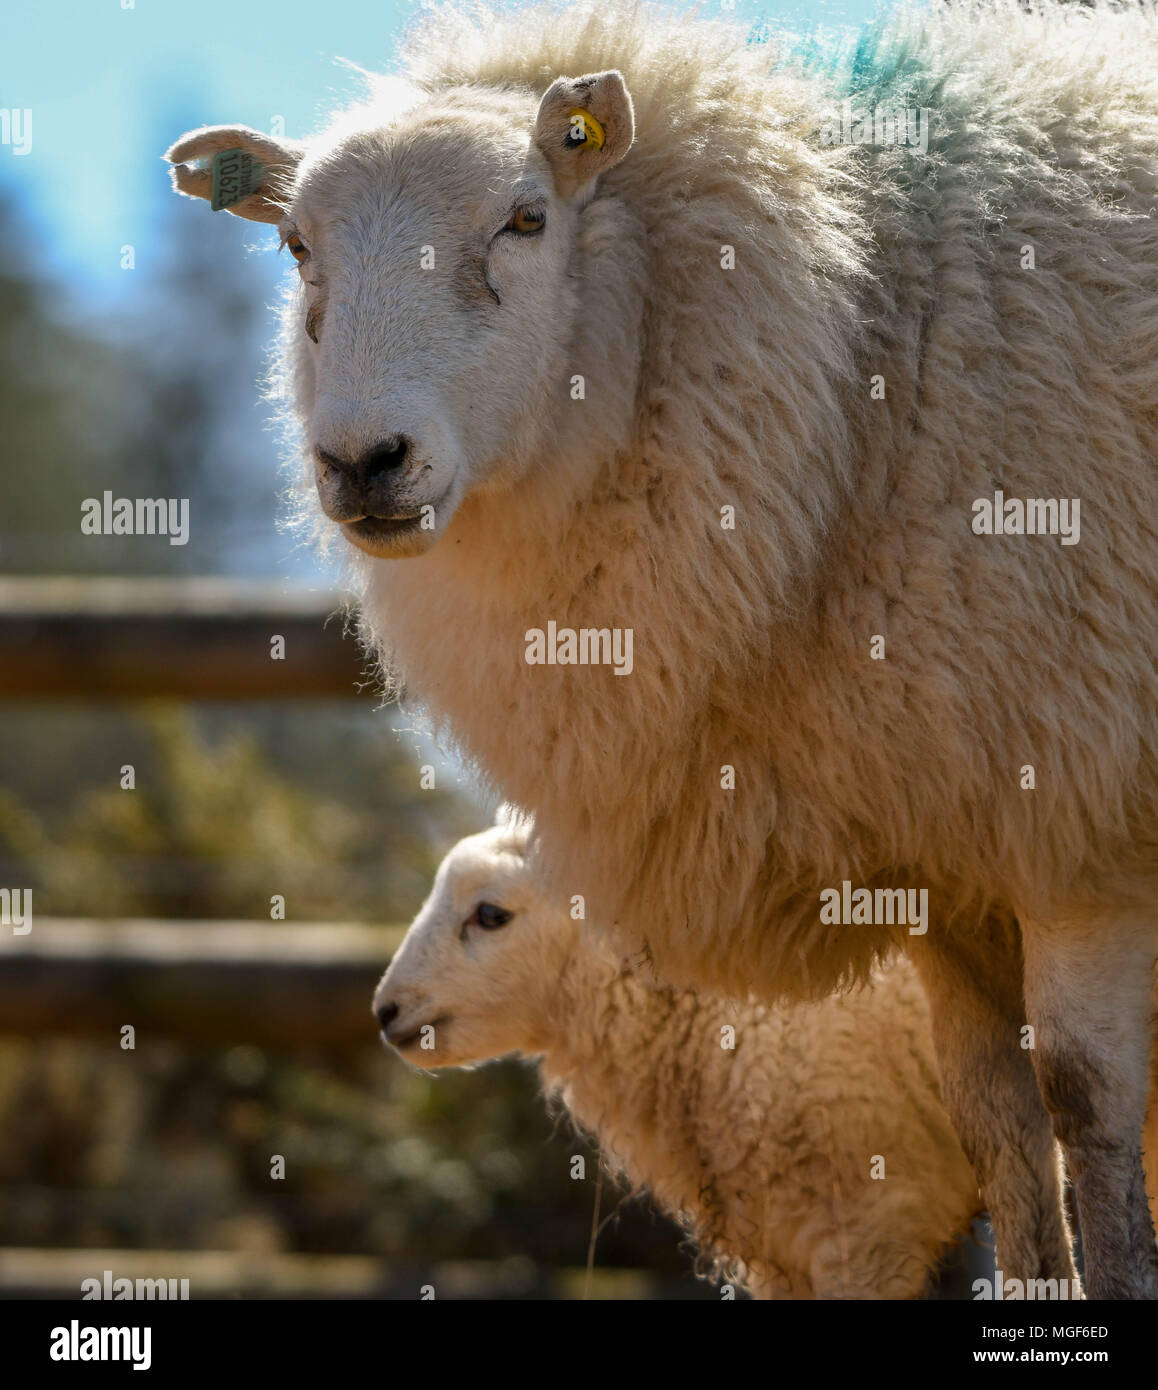 Ewe with its lamb in the background - Stock Image